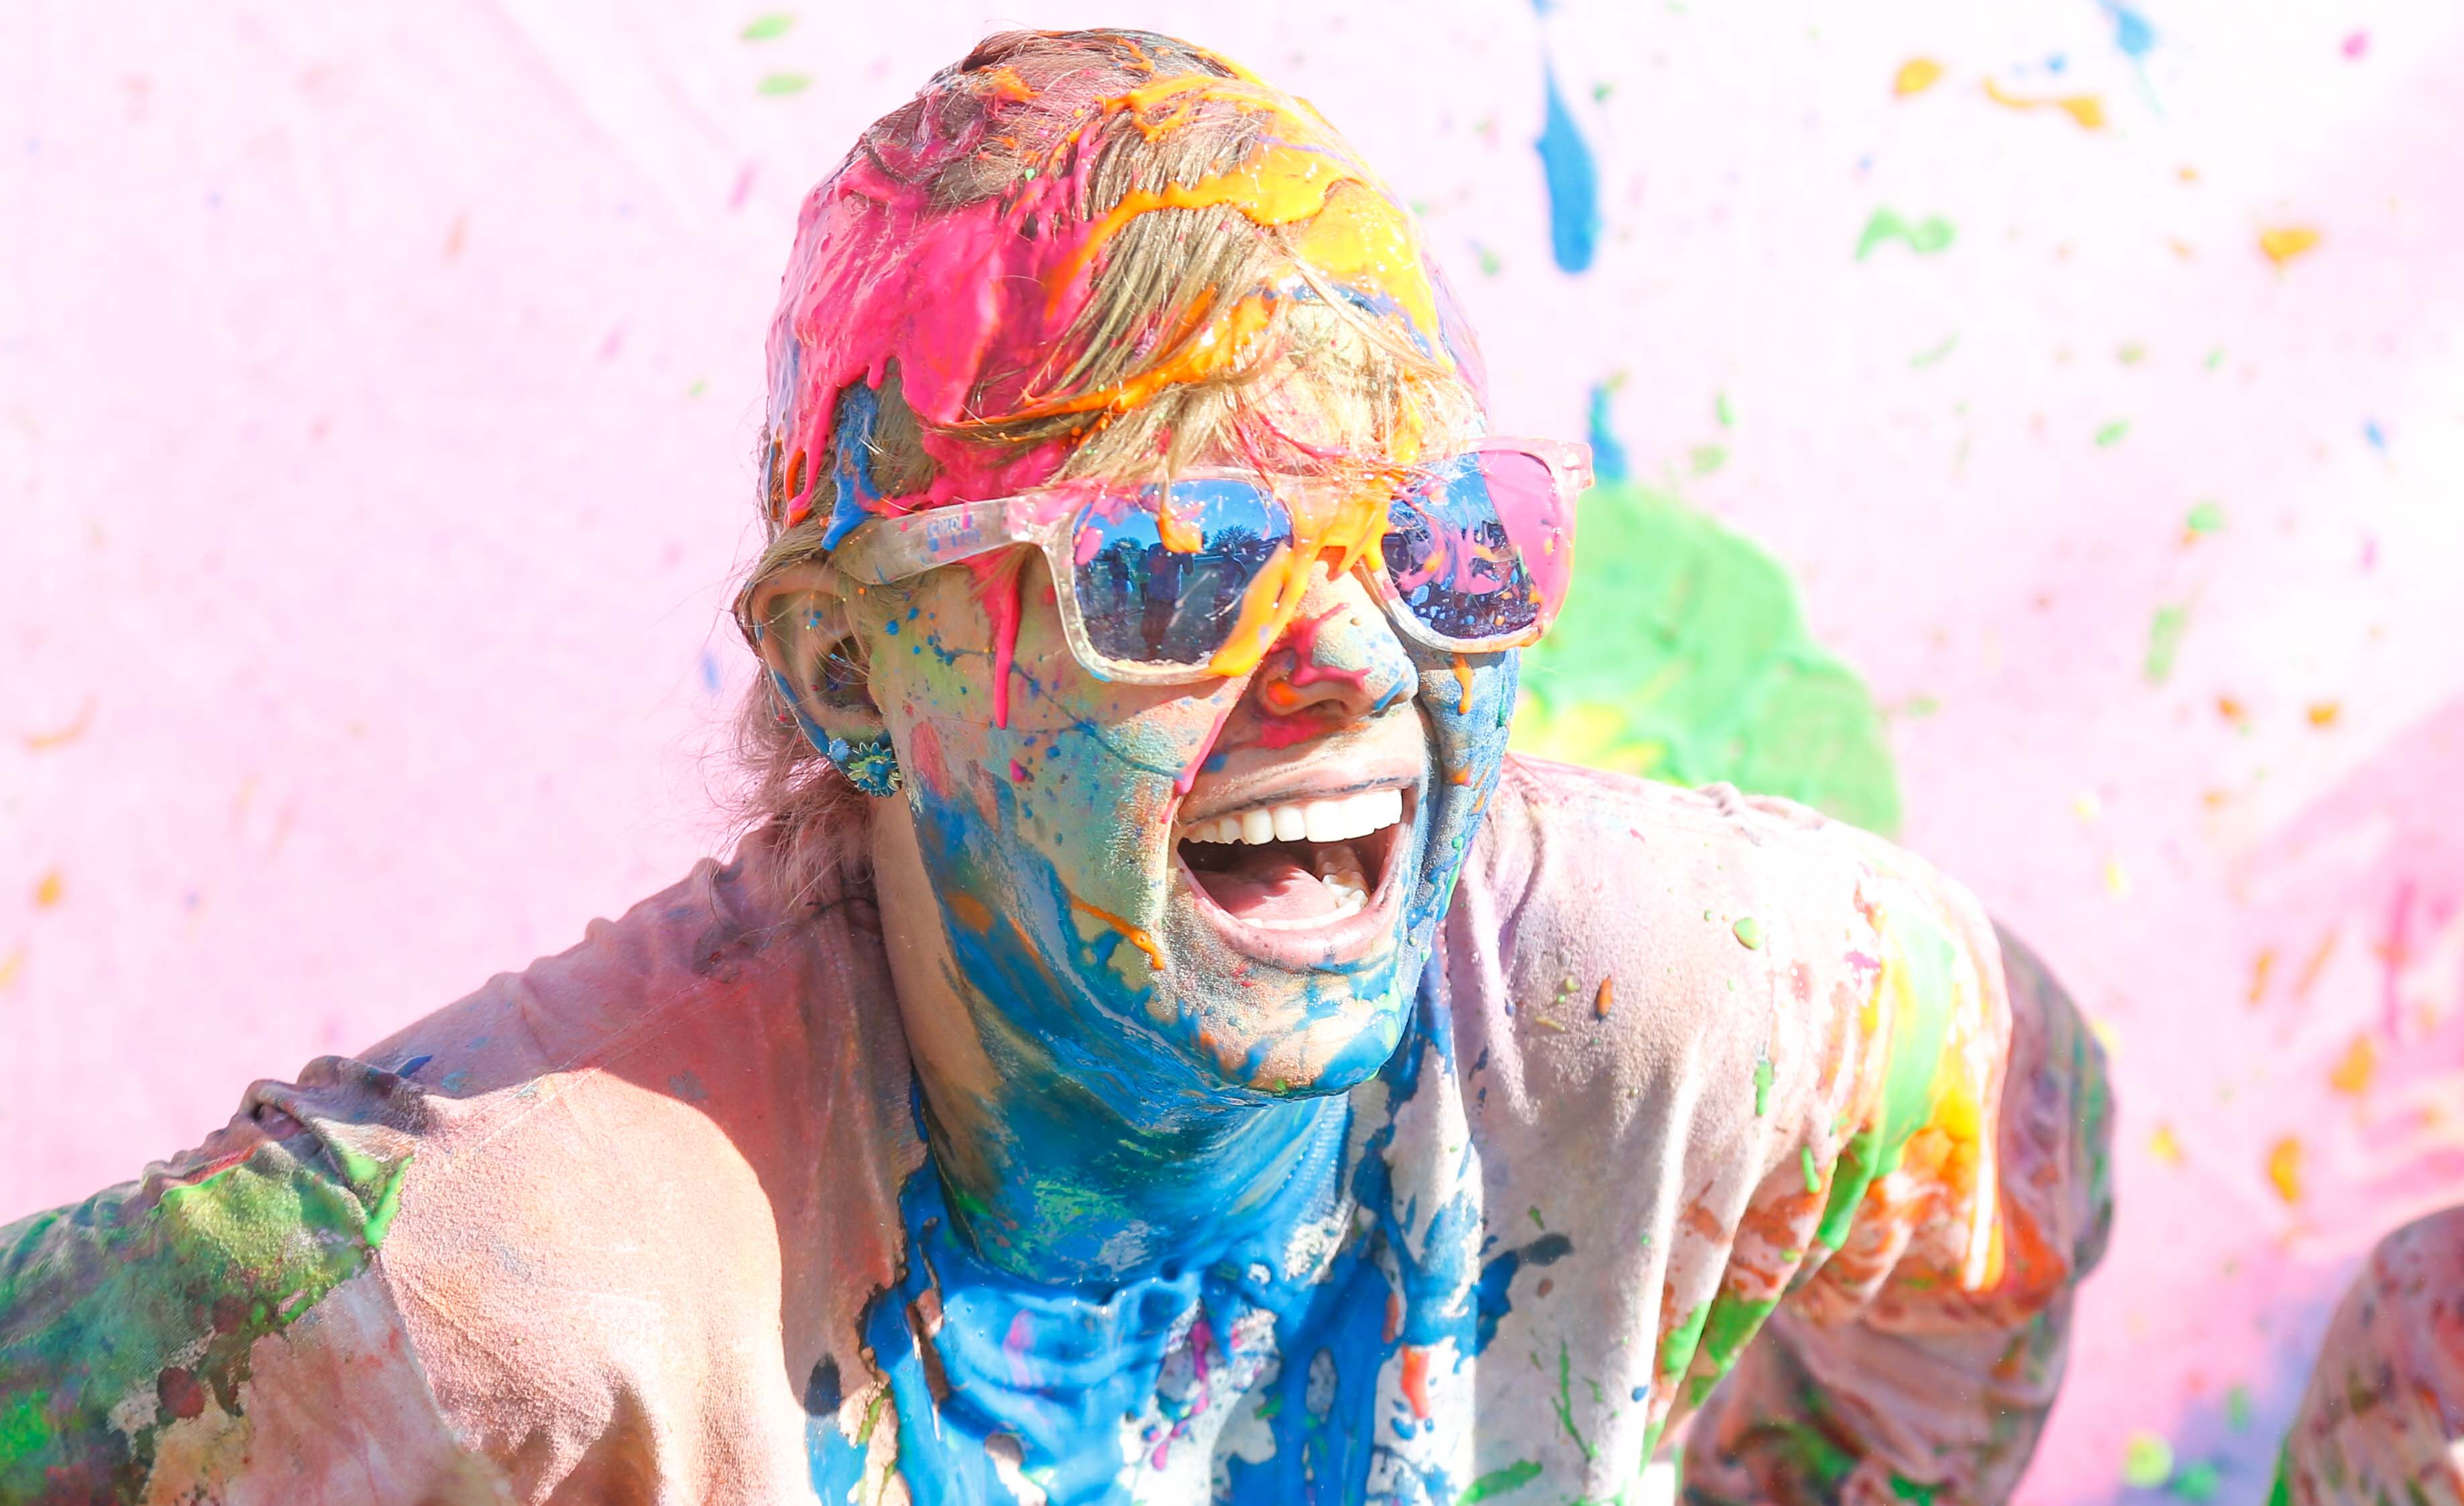 Raise money for St John's at Colour Me Rad event at Margam Park